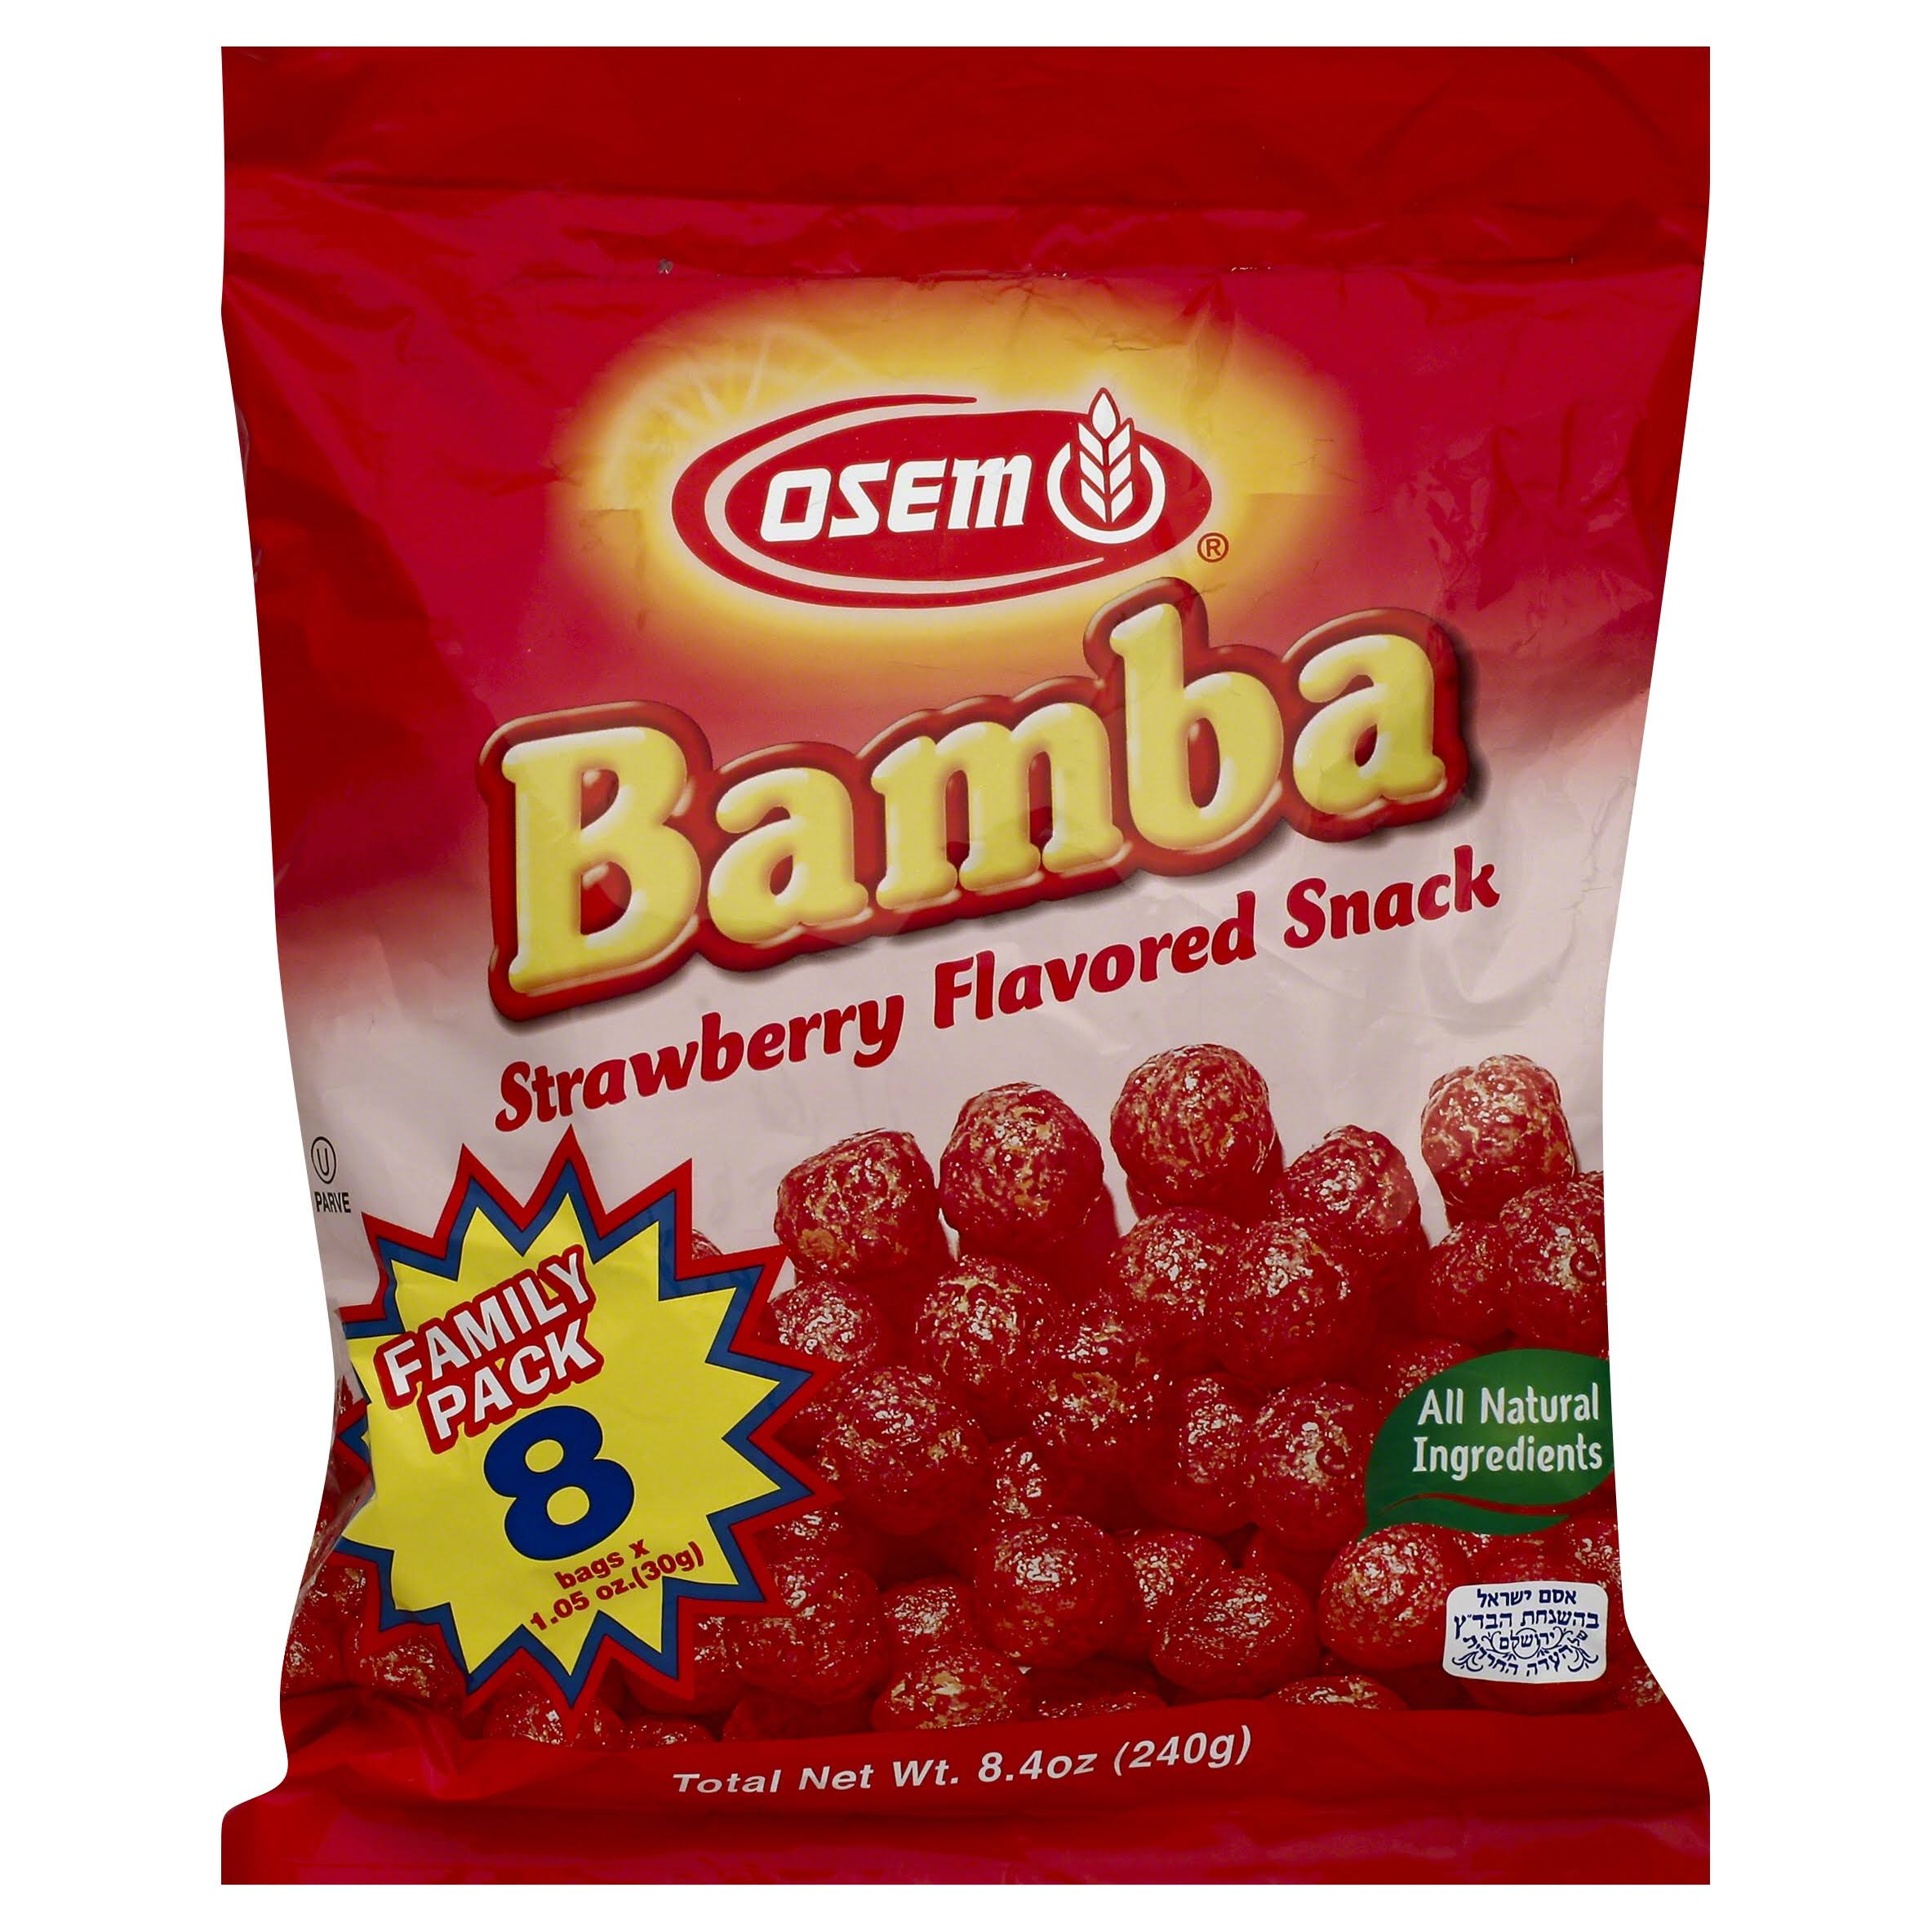 Osem Bamba, Strawberry Flavored Snack, Family Pack - 8 pack, 1.05 oz bags